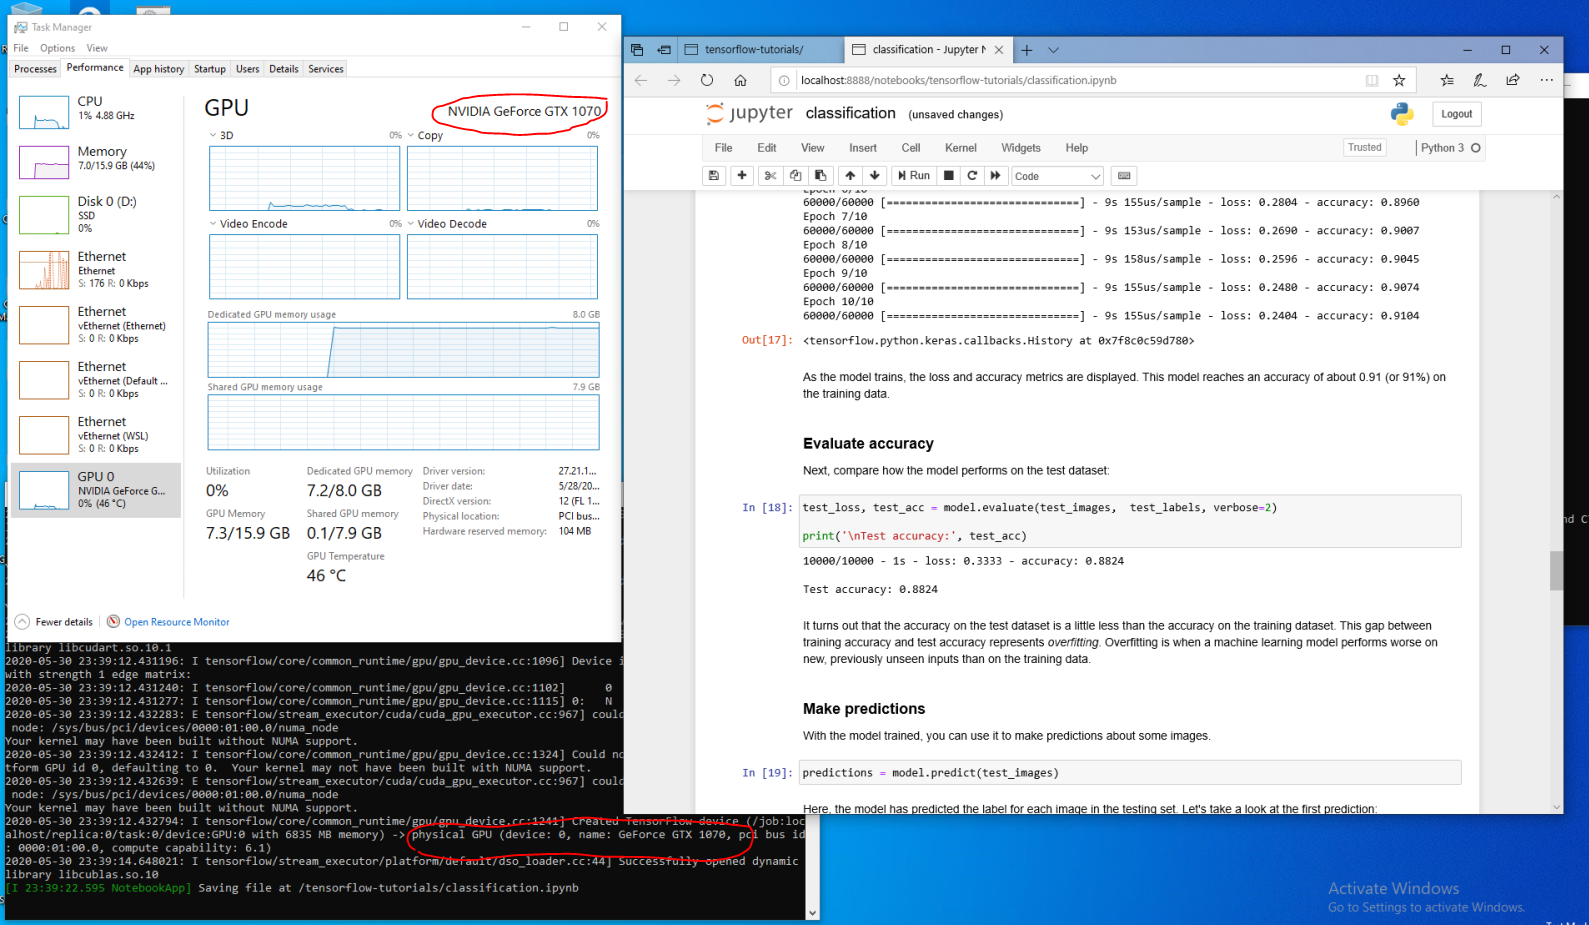 The screenshot from the host system shows GPU node activities on the Performance tab of the Windows Task Manager tool while running a TensorFlow workload in the GPU-accelerated WSL 2 container. The picture includes the Task Manager window, WSL 2 container log, and Edge browser running the Jupyter notebook tutorial.